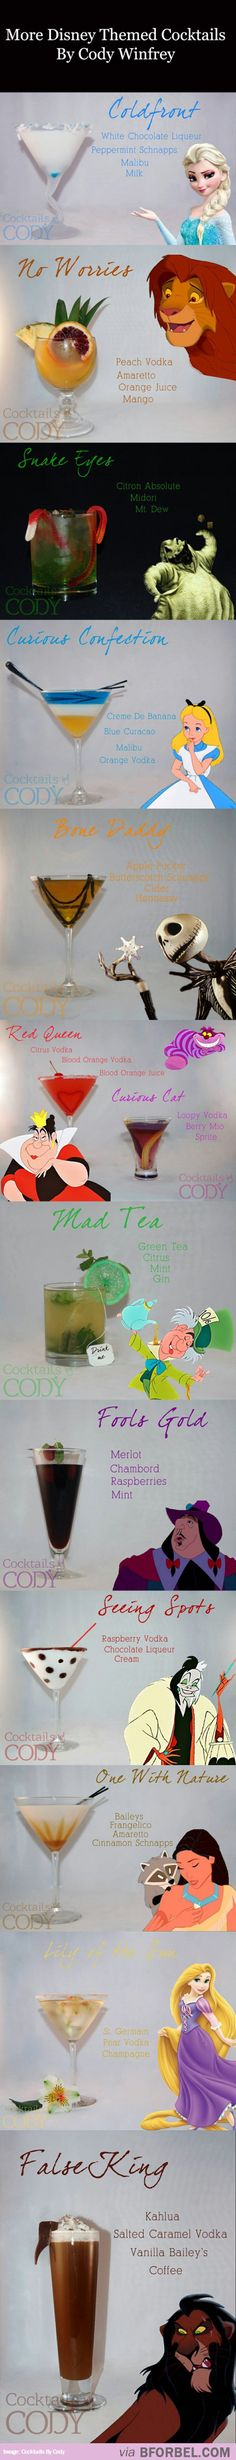 The rapunzel one for Brooke! Disney Cocktails, Disney Themed Drinks, Disney Themed Weddings, Disney Themed Party, Disney Mixed Drinks, Spring Cocktails, Licor Baileys, Party Drinks, Party Favors